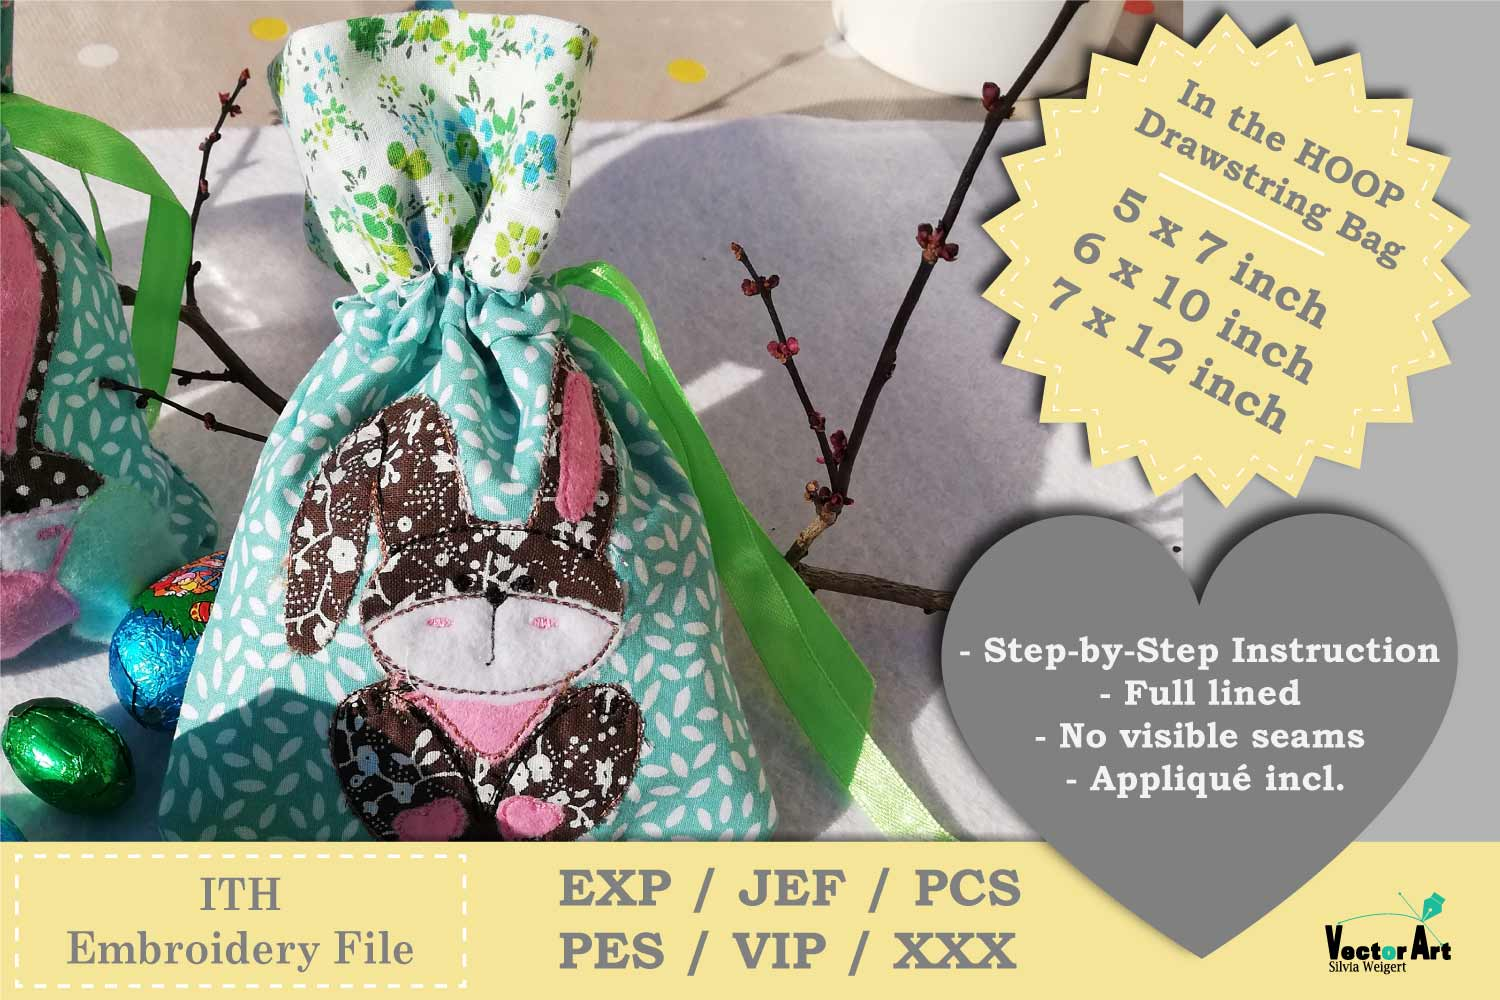 ITH -Drawstring Bag with Bunny - Embroidery File example image 2